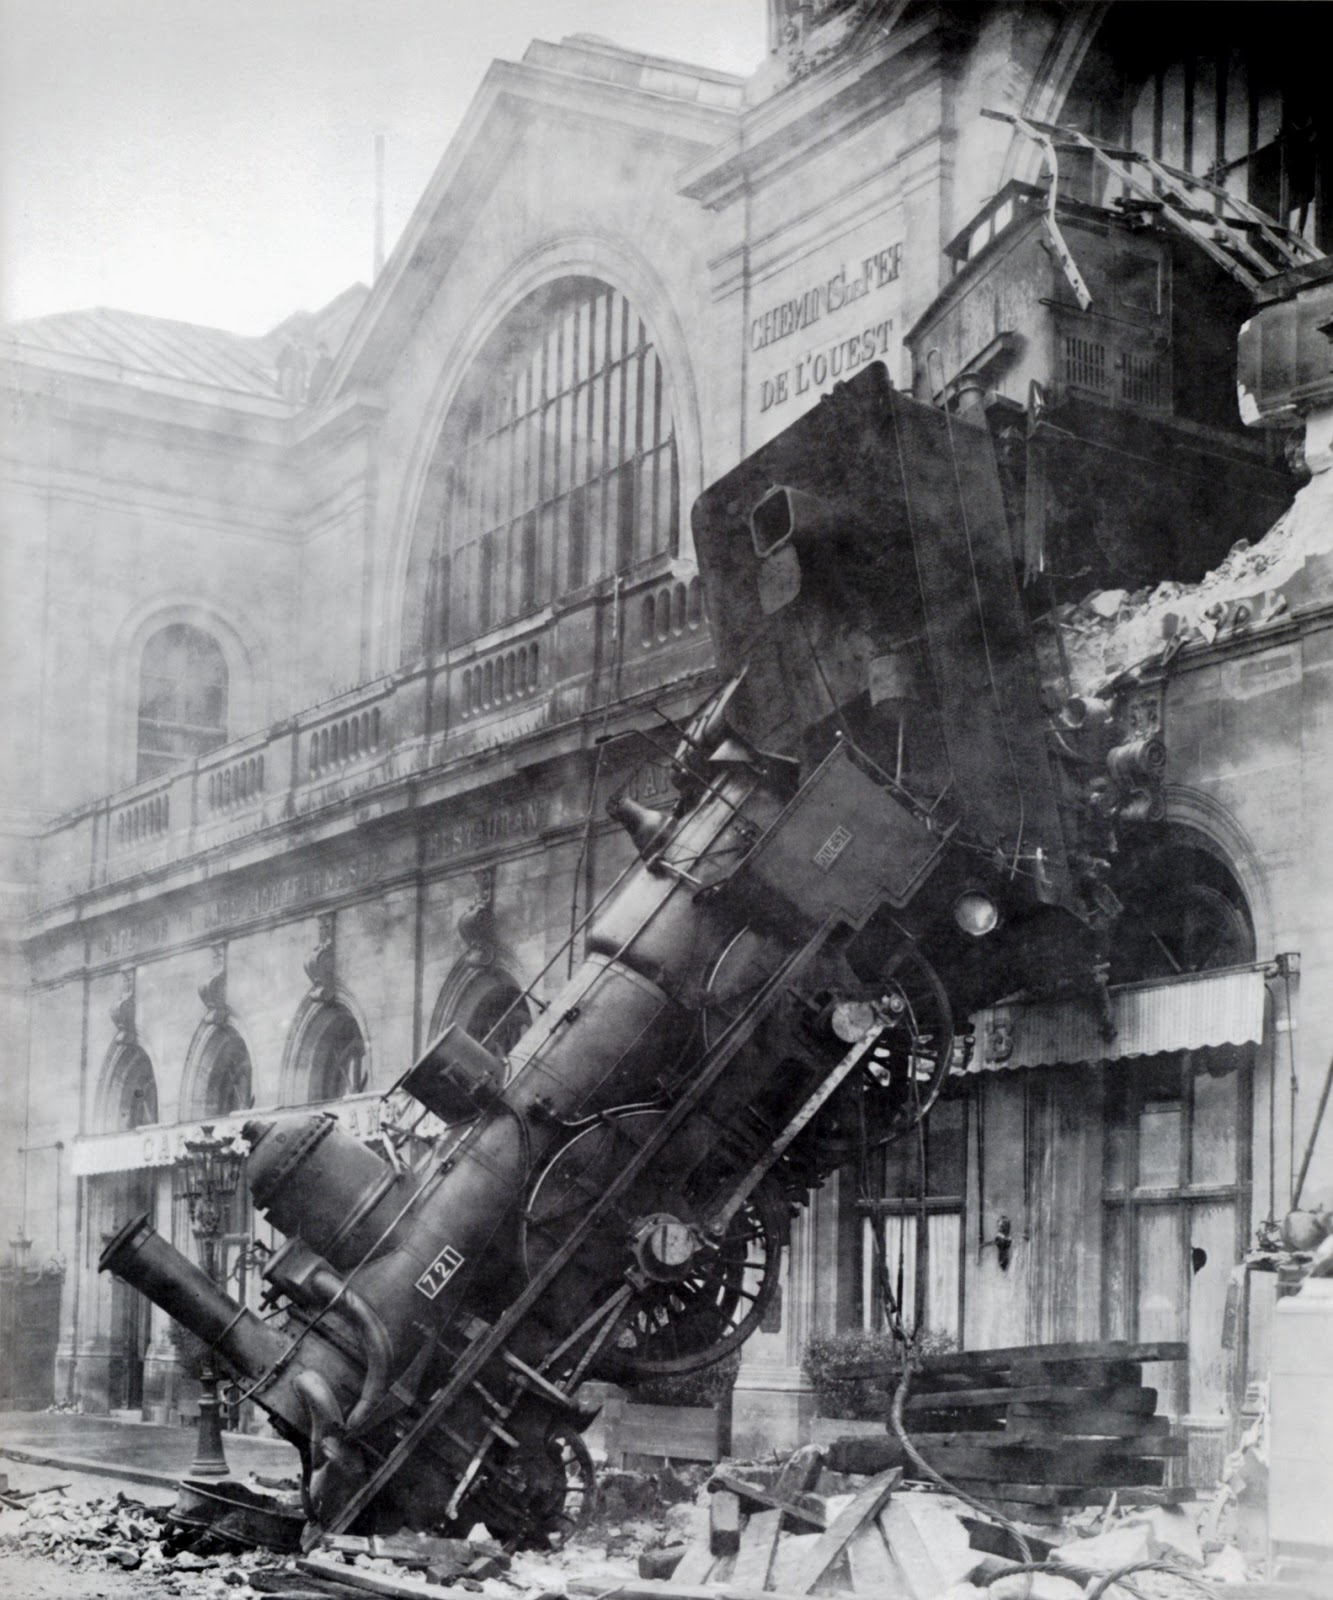 Incidente ferroviario di Montparnasse - 1895